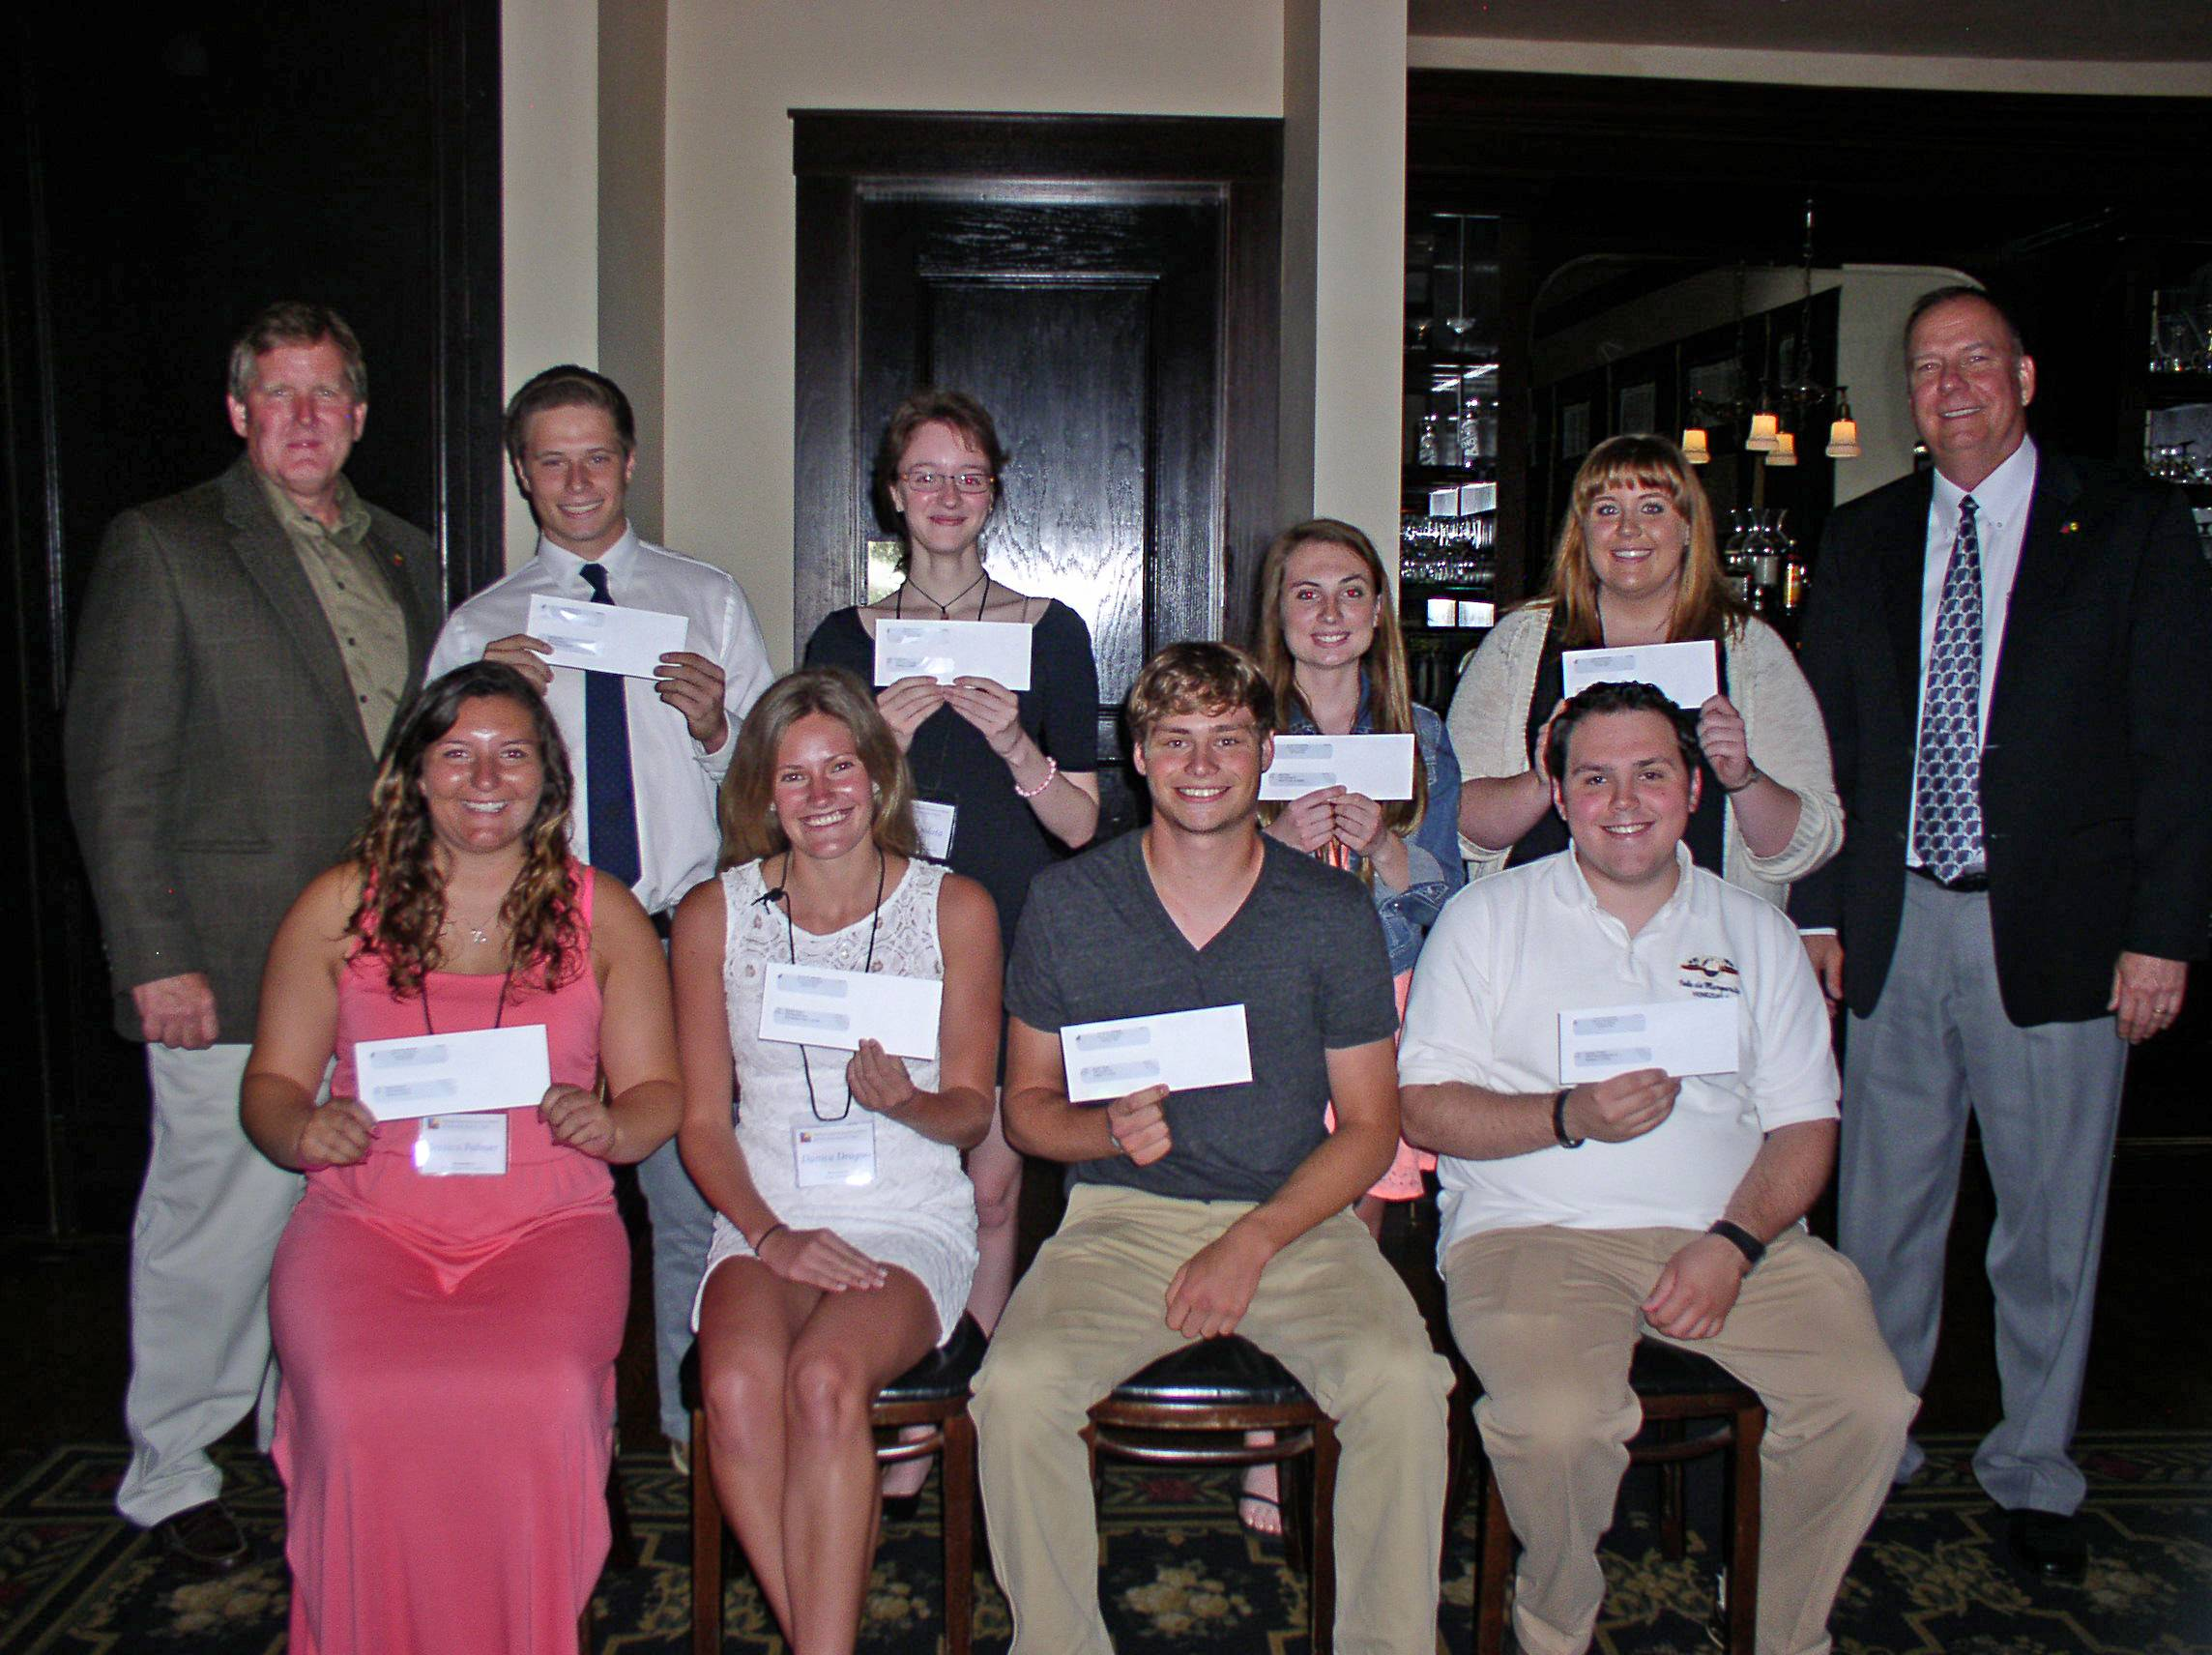 Thirteen college-bound students recently received scholarships from the Finishing Contractors Association of Illinois. Pictured are, front row, from left, Jessica Palmer, Danica Dragoo, Austin Vogel, and Alexander Procaccio for Danesa Tamayo; and back row, Ken Ober, George Cote, Emily Dolata, Jami Dahl, Andrea Cardinal, and Mark Palmer.